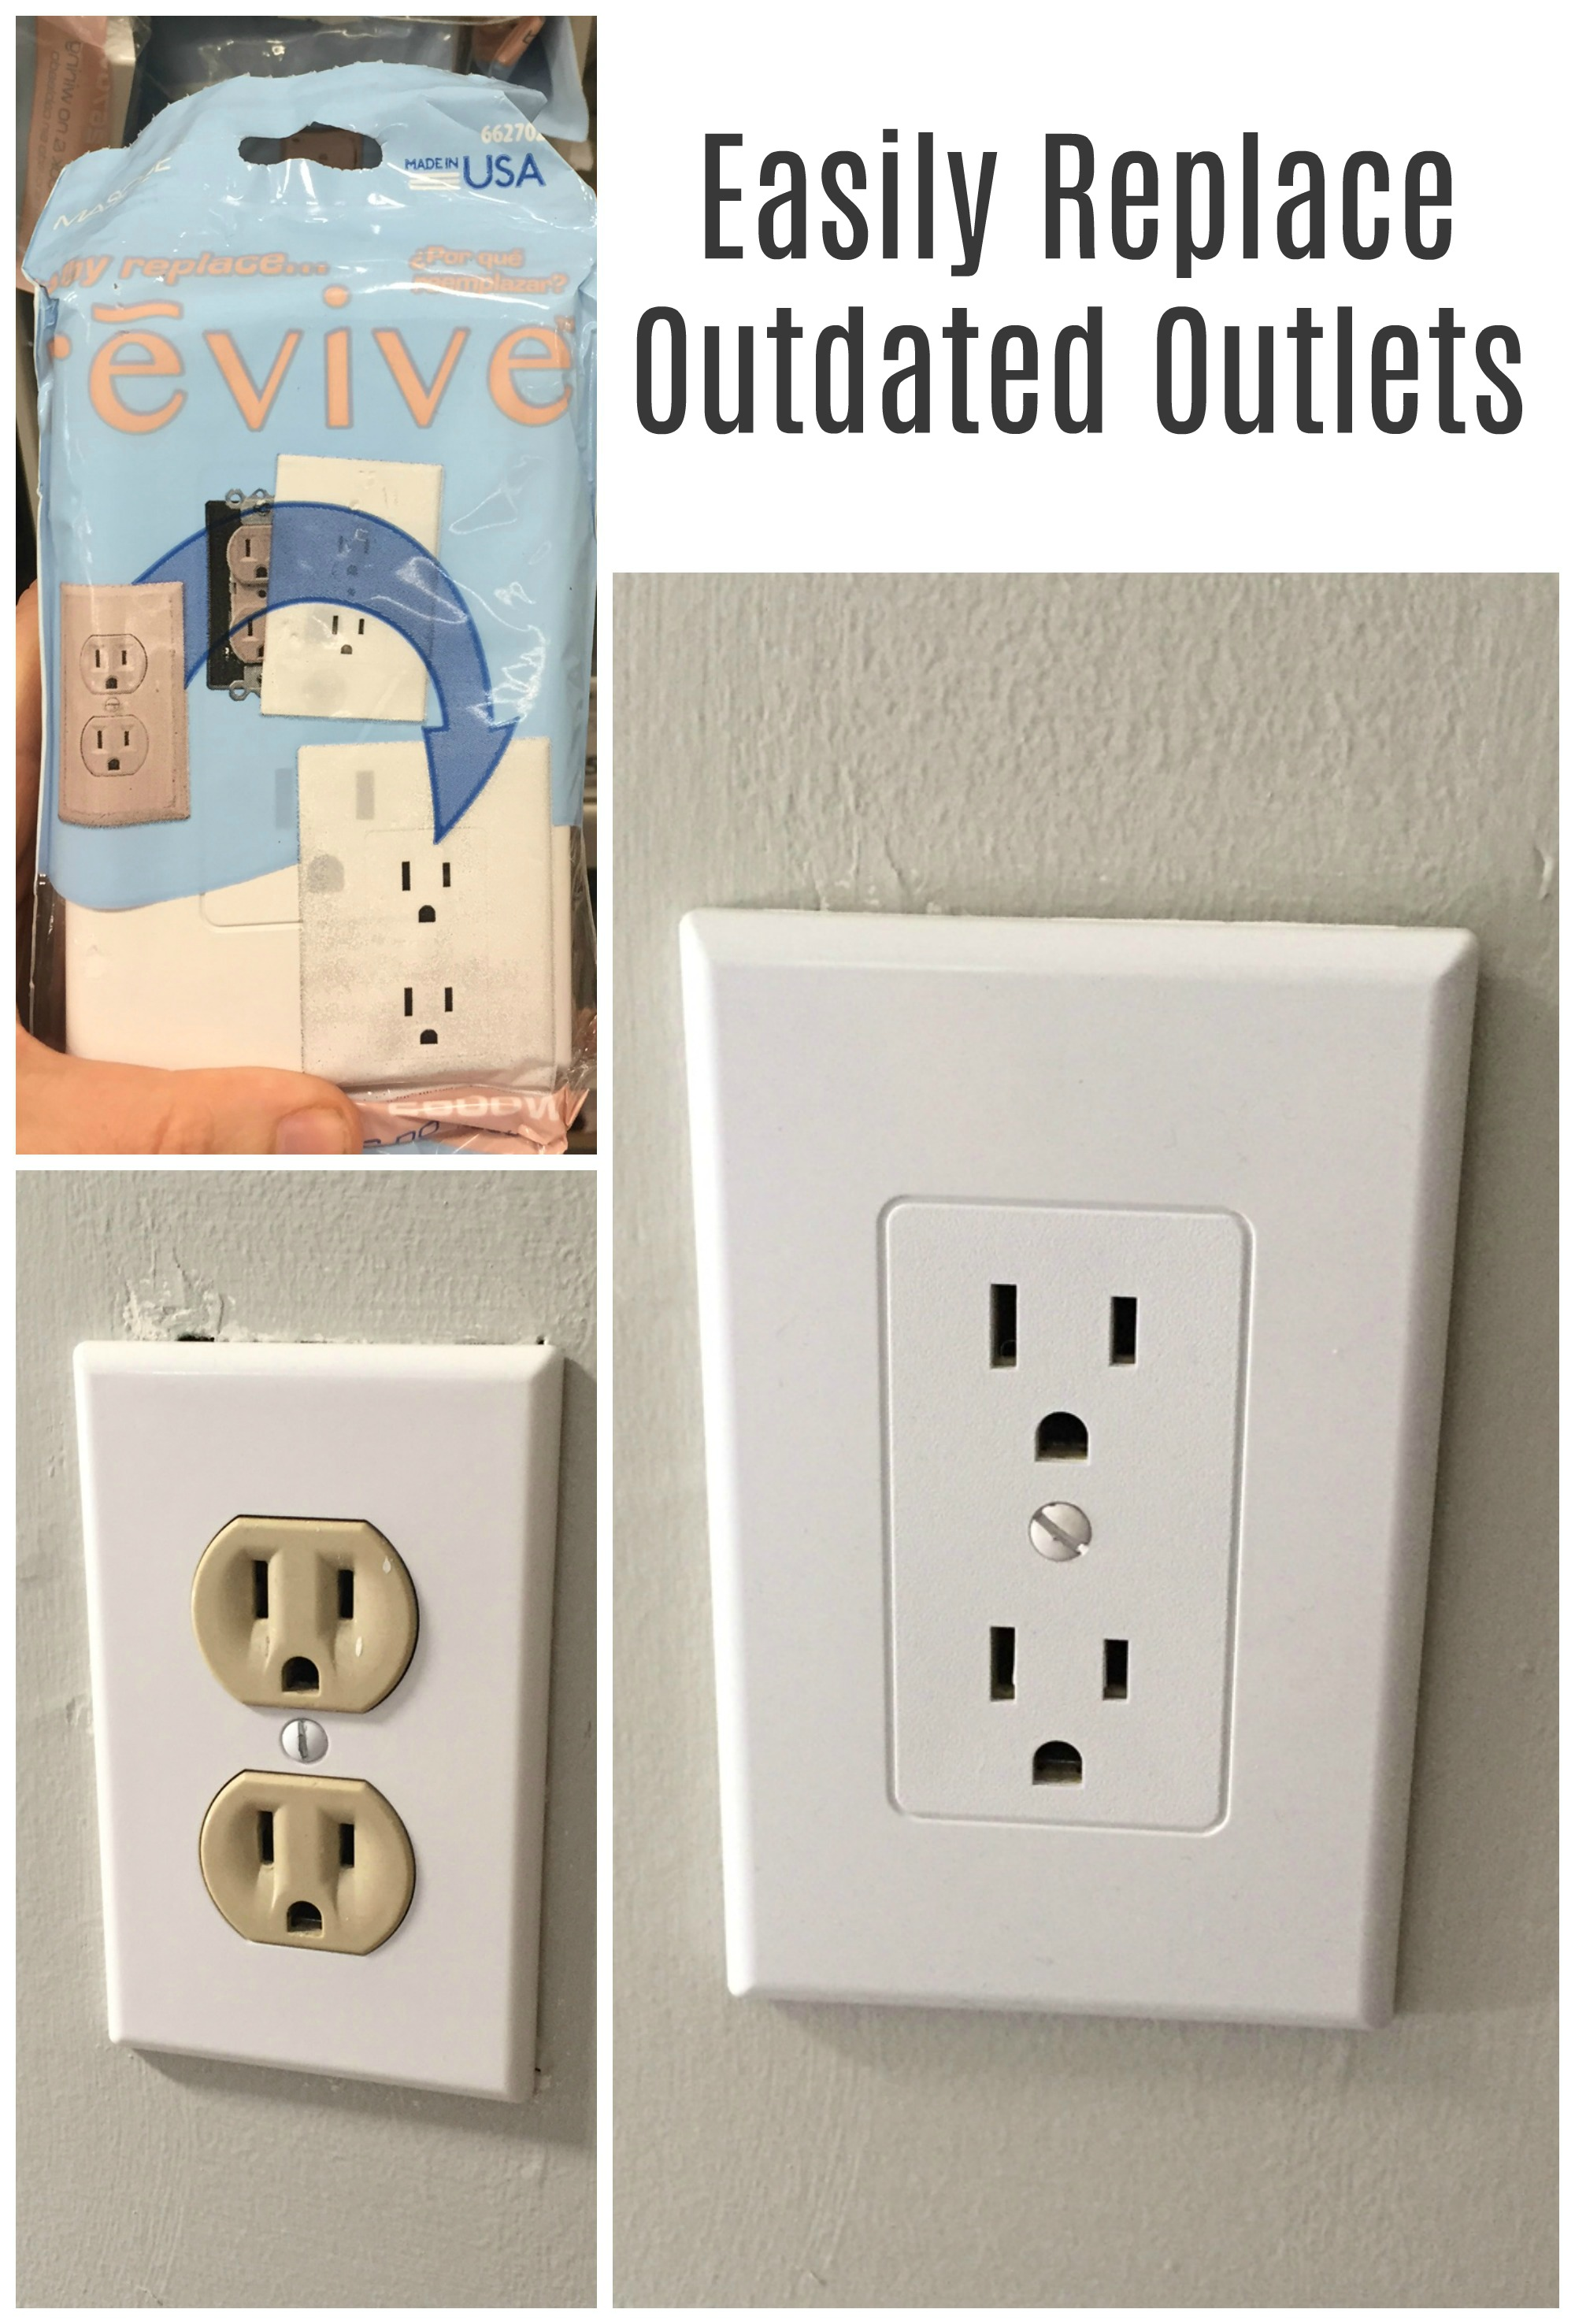 new-electrical outlets